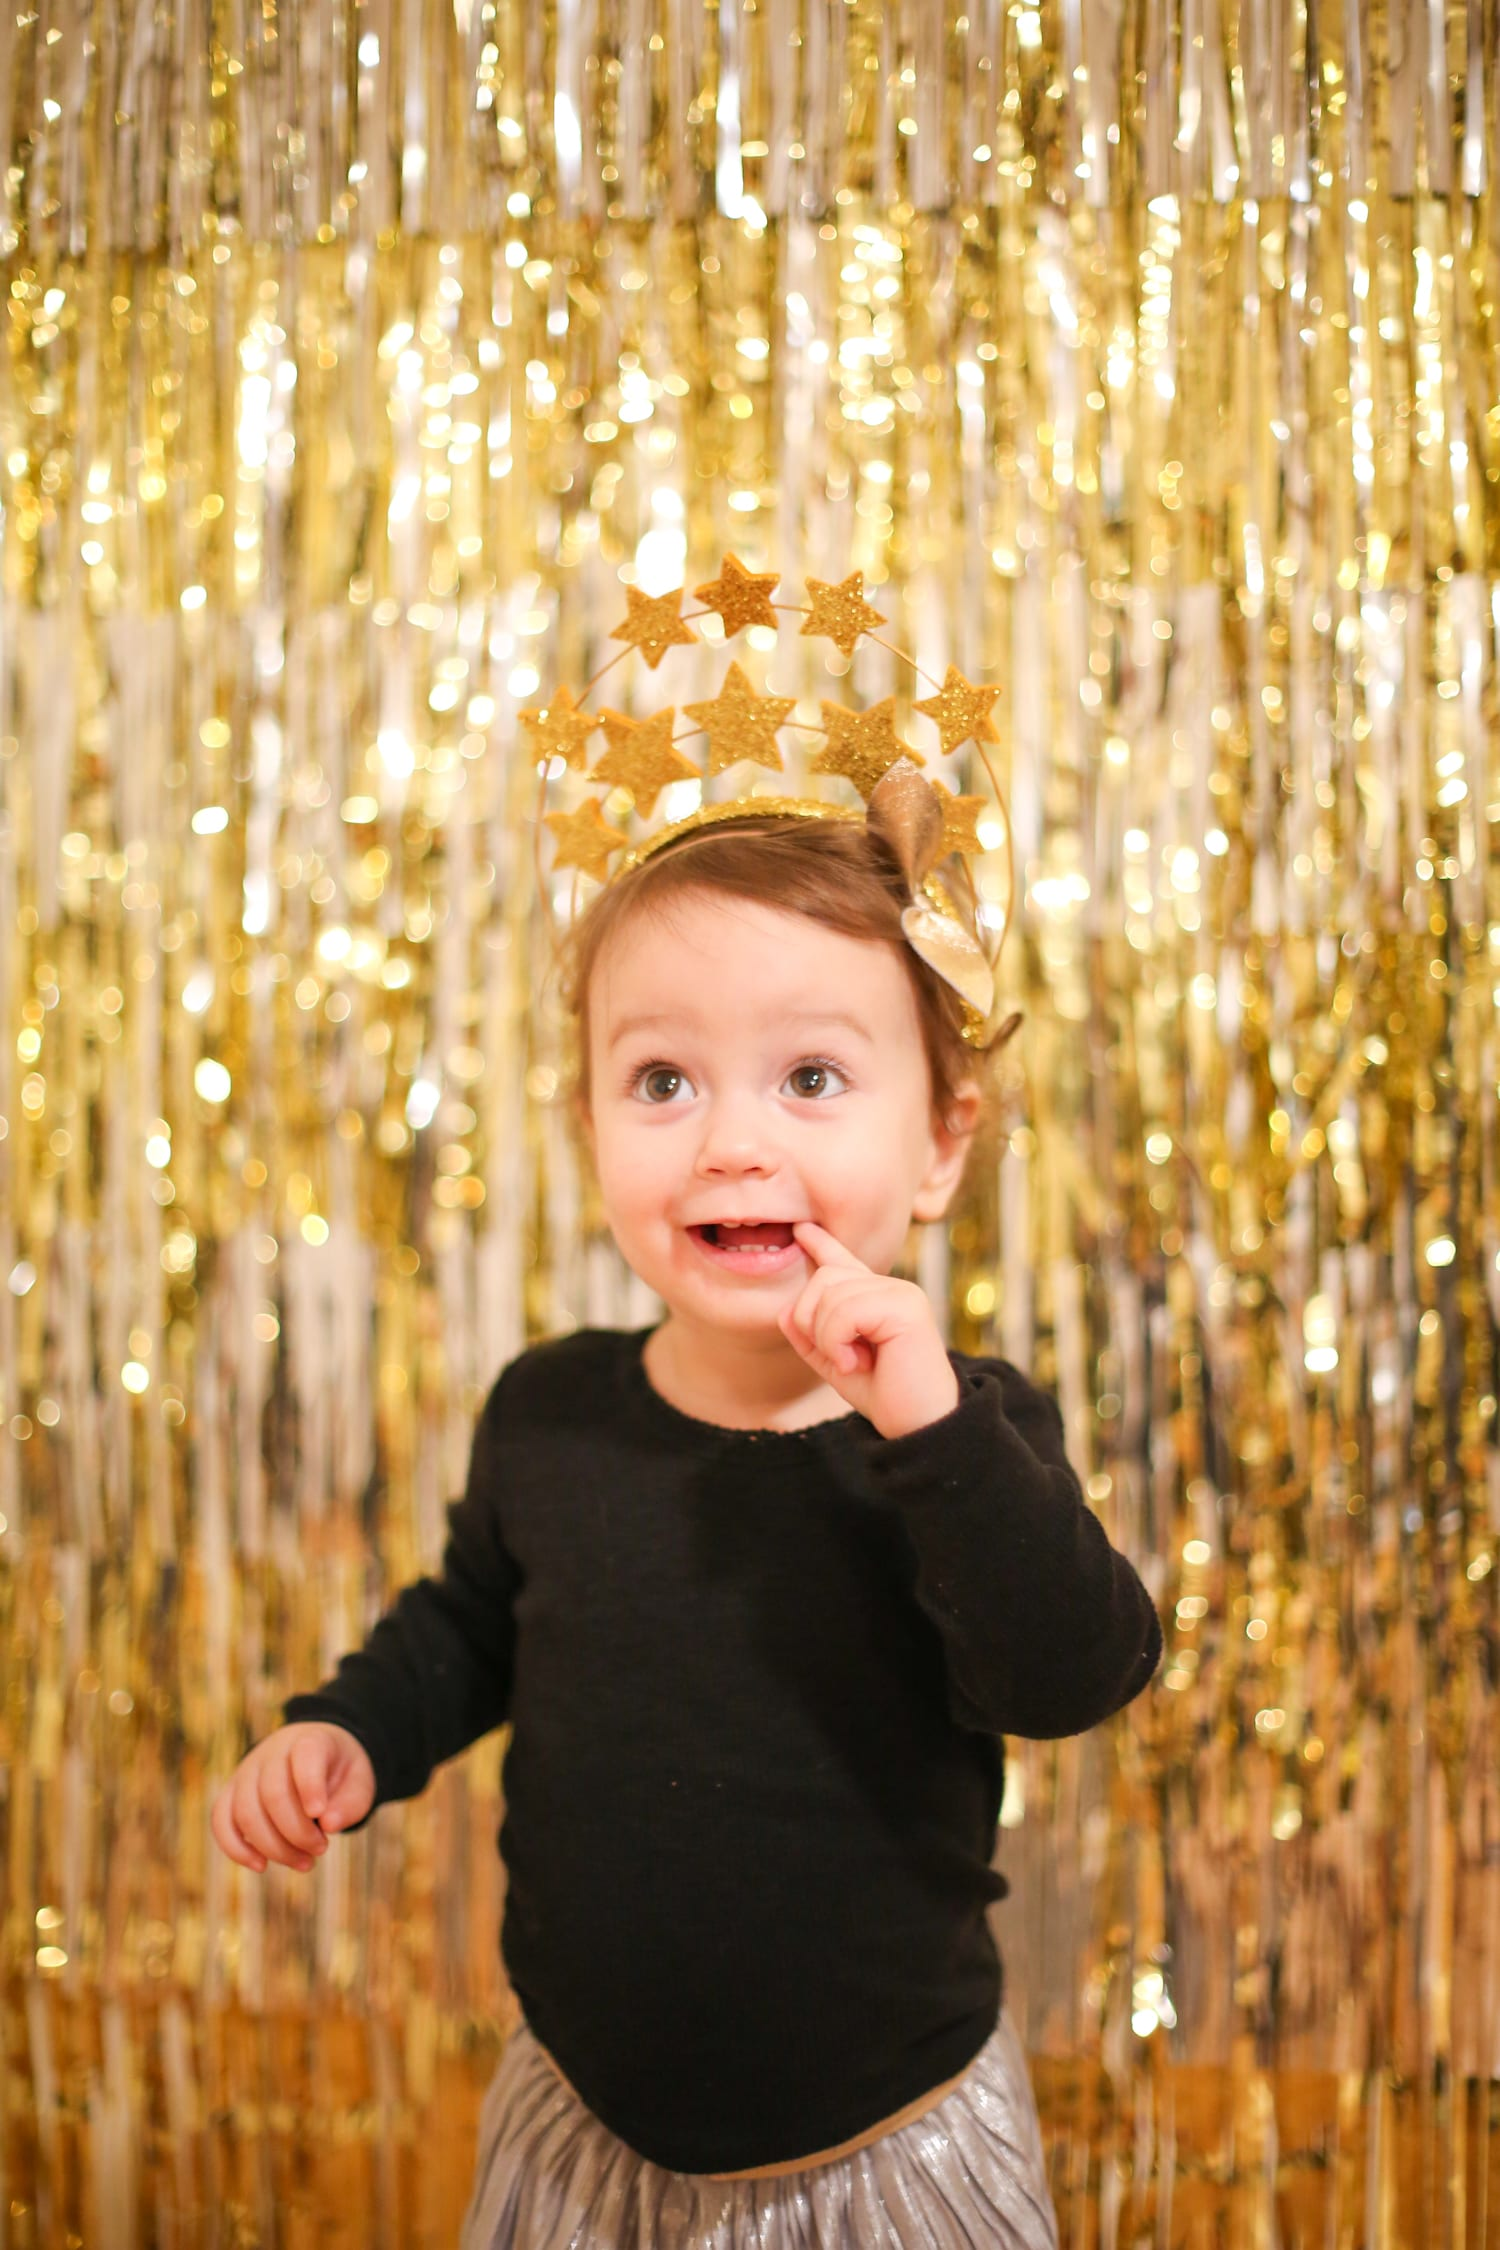 How to make a 5-minute new years eve photo backdrop